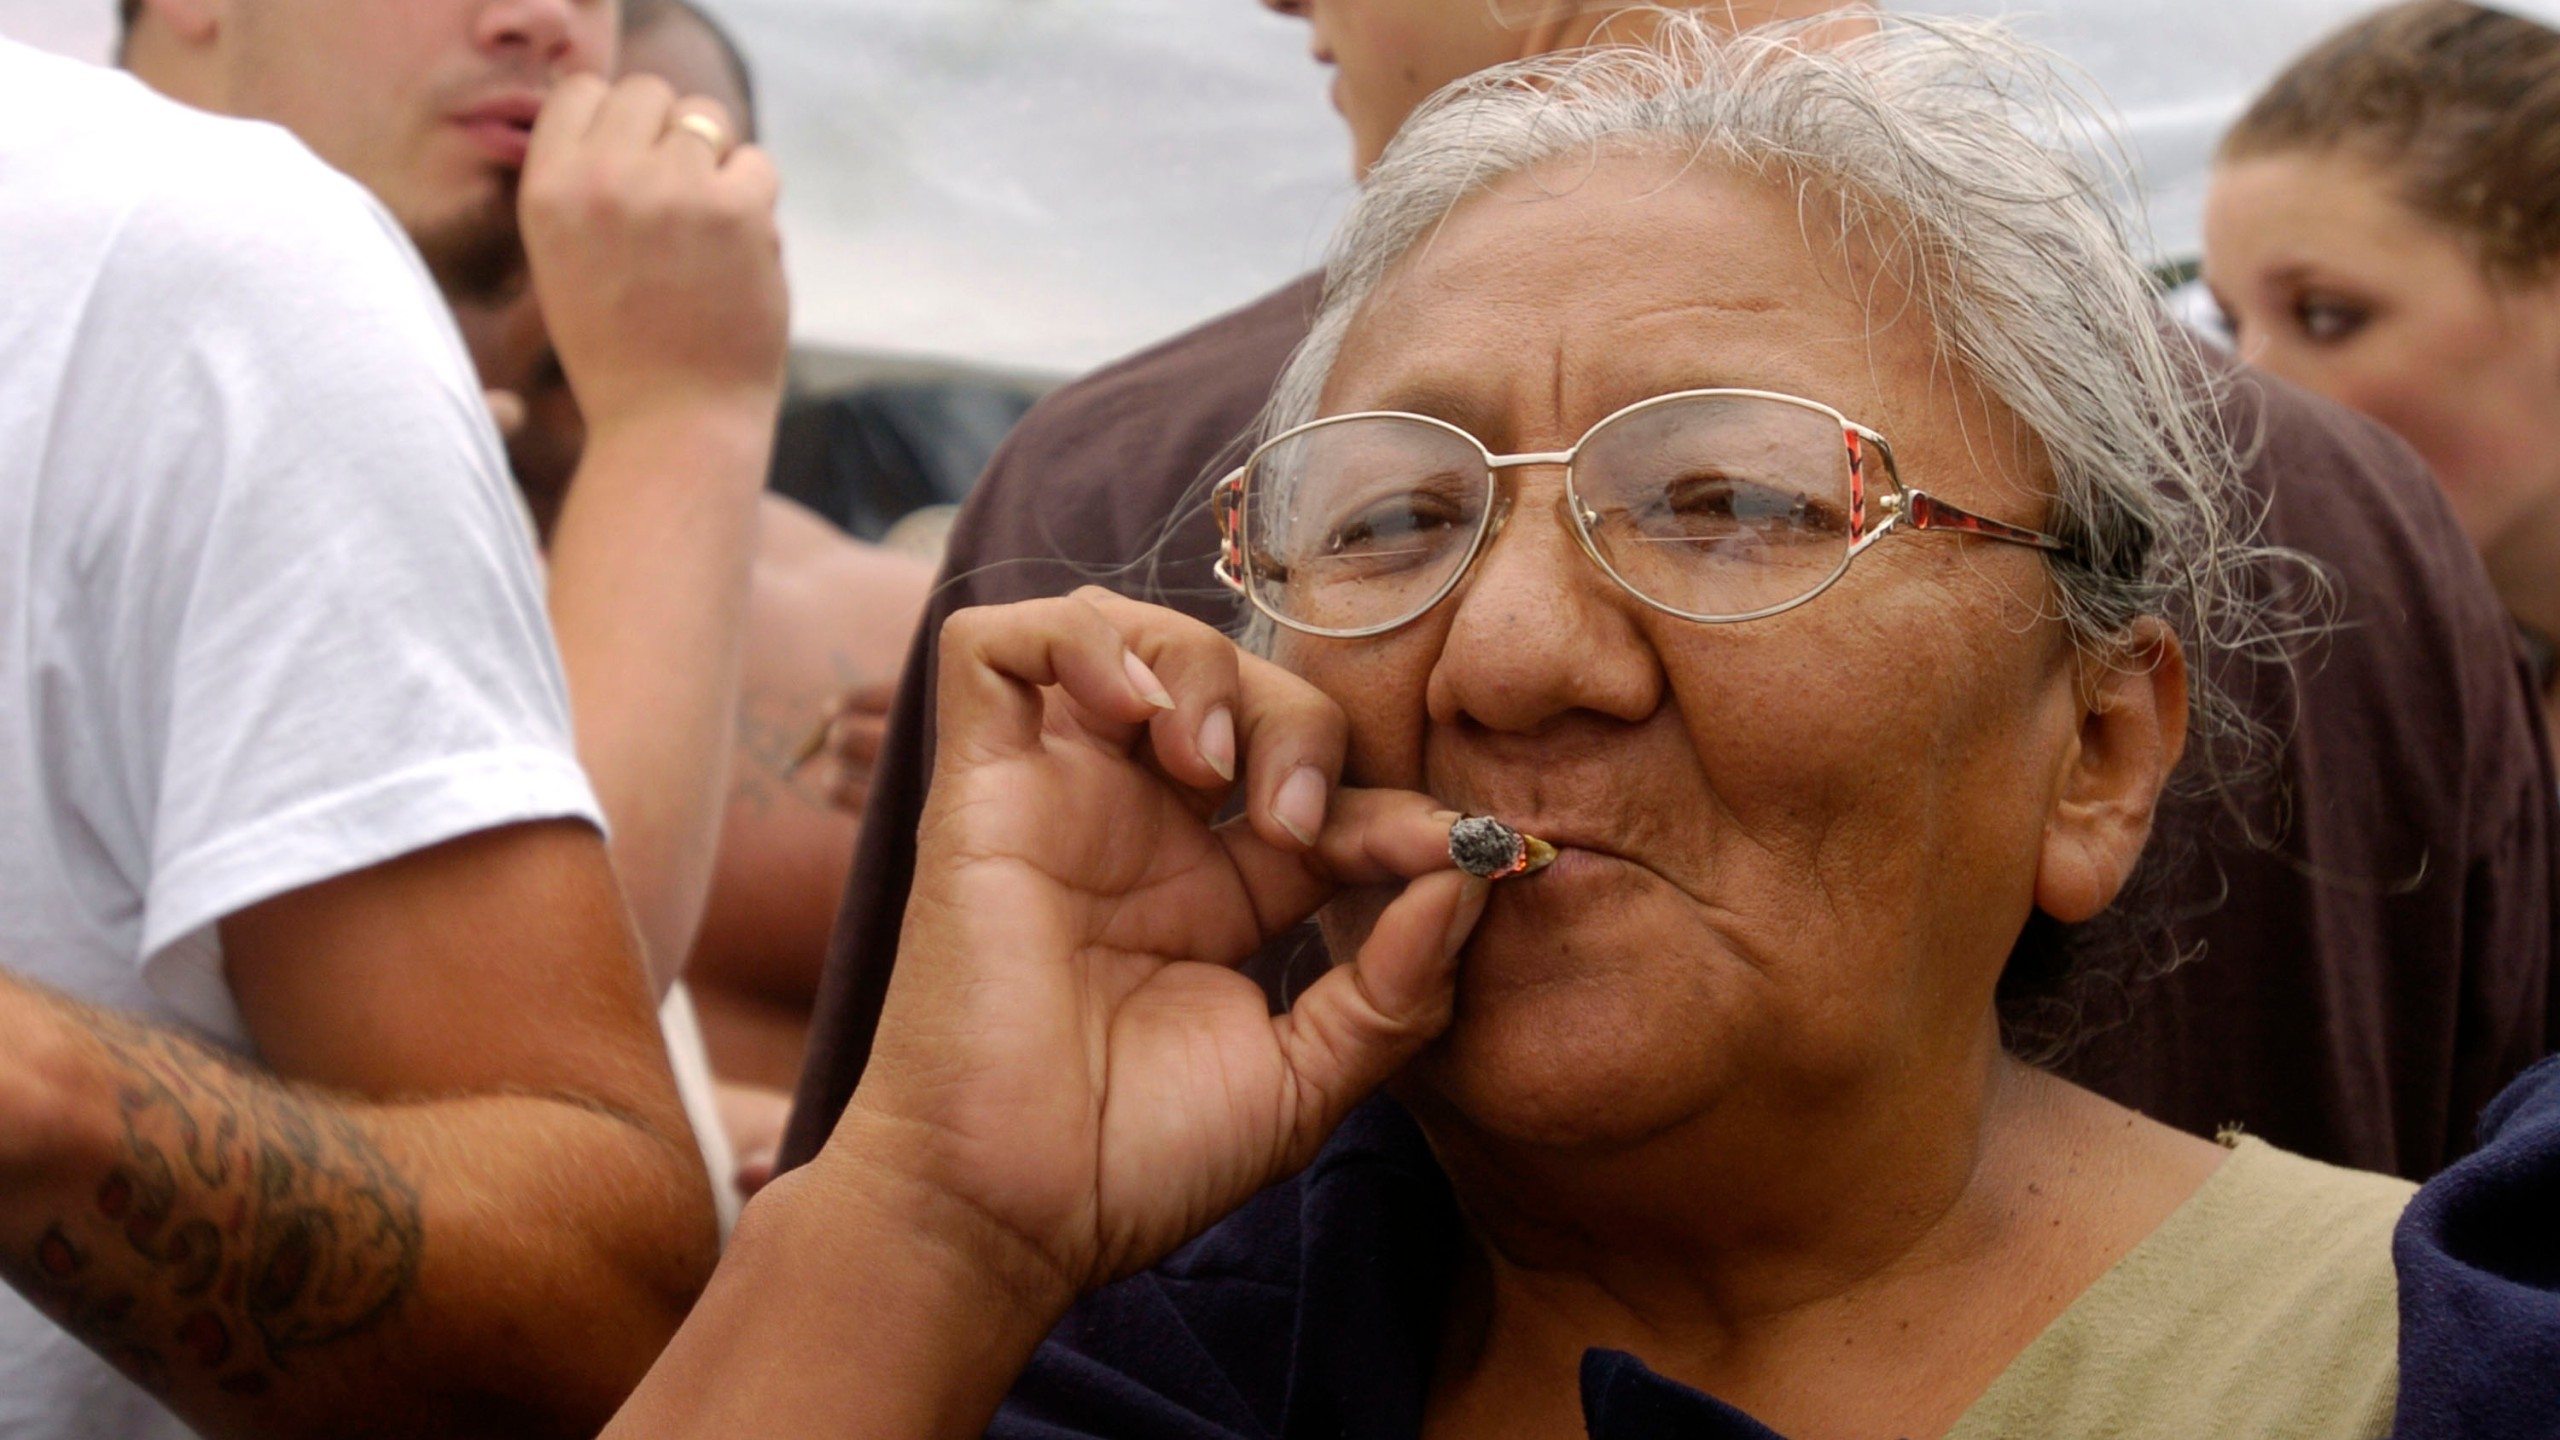 A woman smokes a marijuana joint at Hempfest on Aug. 21, 2004, in Seattle, Washington. (Credit: Ron Wurzer/Getty Images)